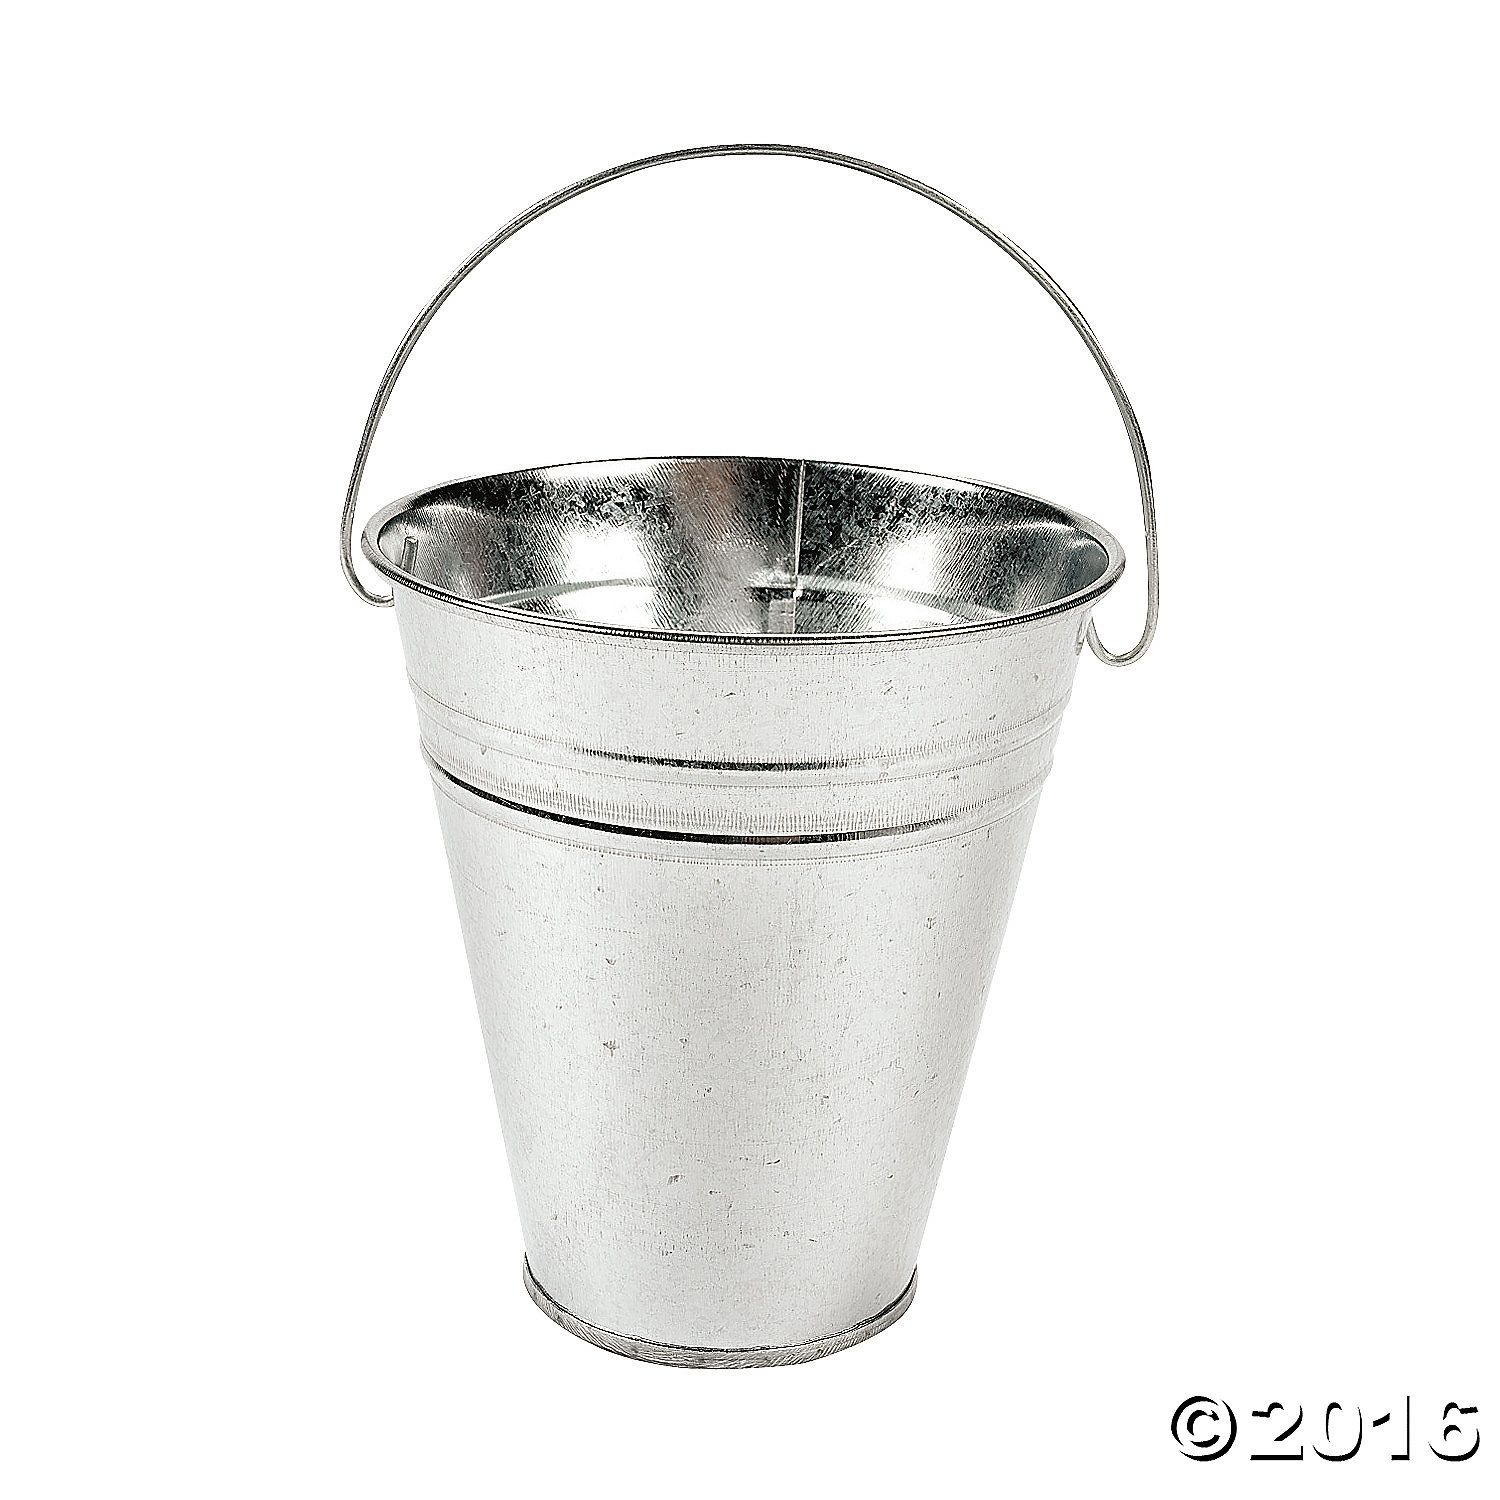 Large Galvanized Buckets. A party favorite! Fill these versatile metal buckets with toys, novelties, wrapped candy and other goodies! Fill them with Easter ...